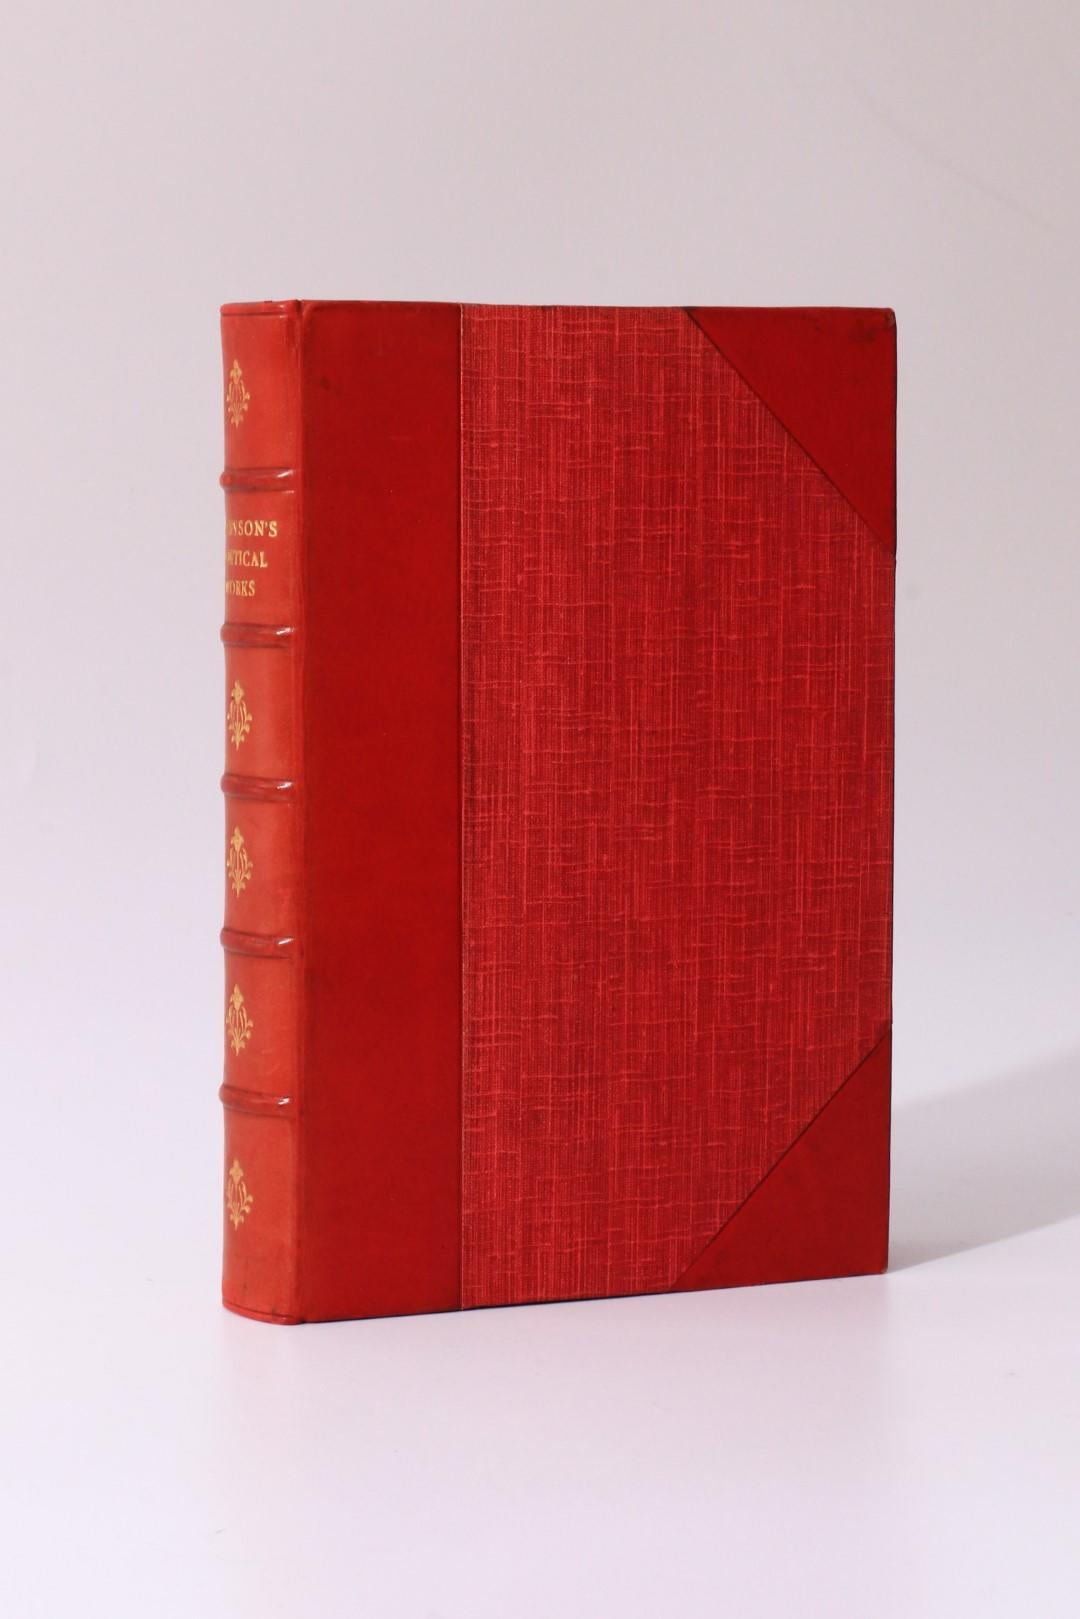 Alfred Lord Tennyson - Poetical Works of Alfred Lord Tennyson - Macmillan, 1924, First Thus.